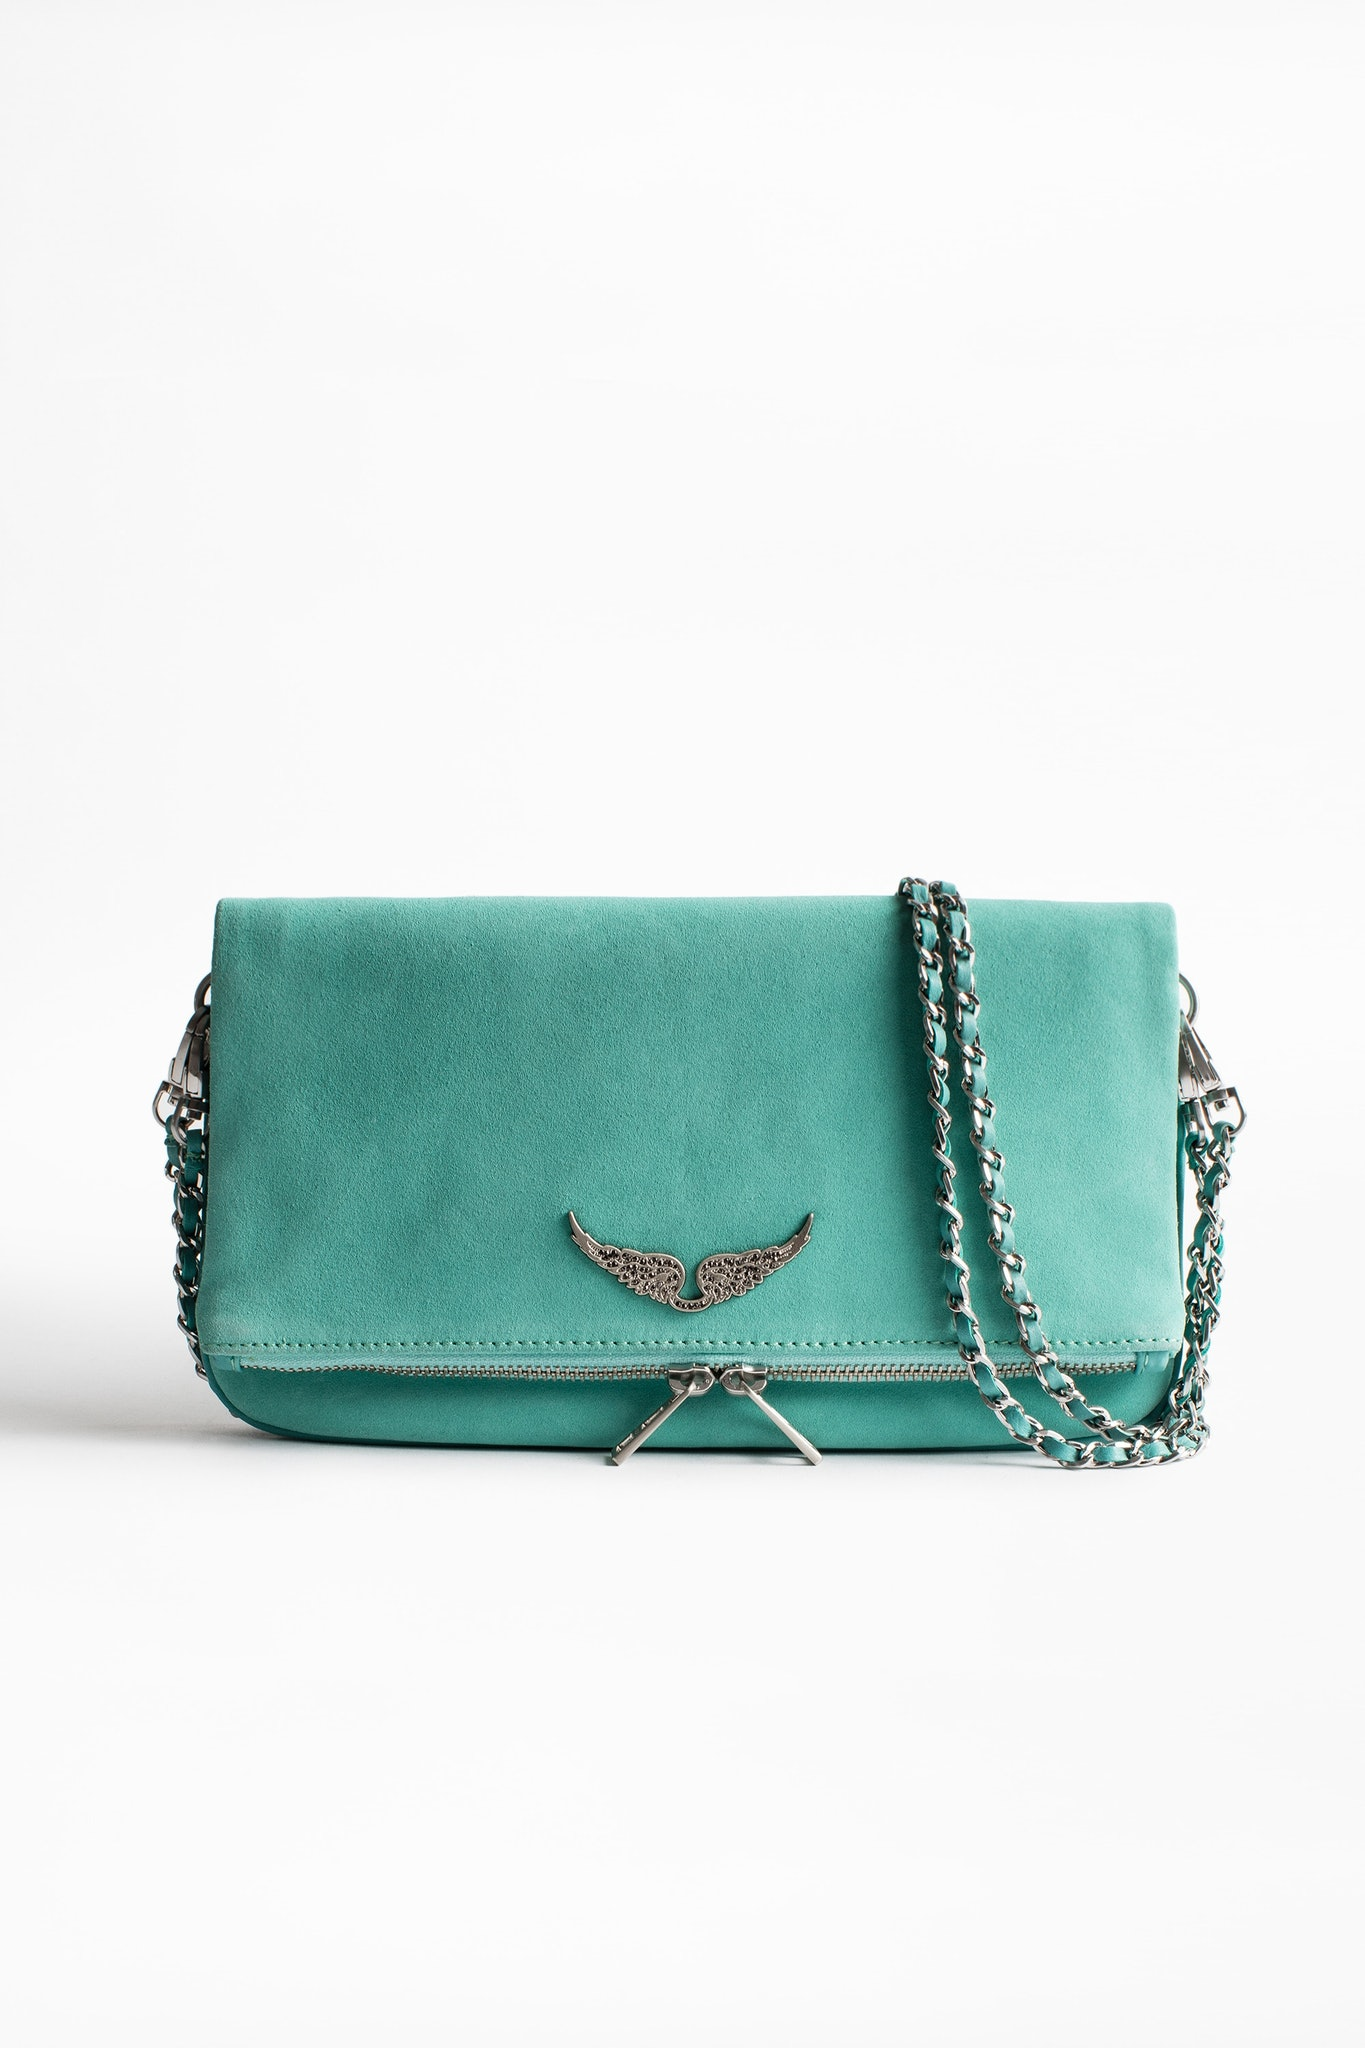 Rock Suede clutch bag